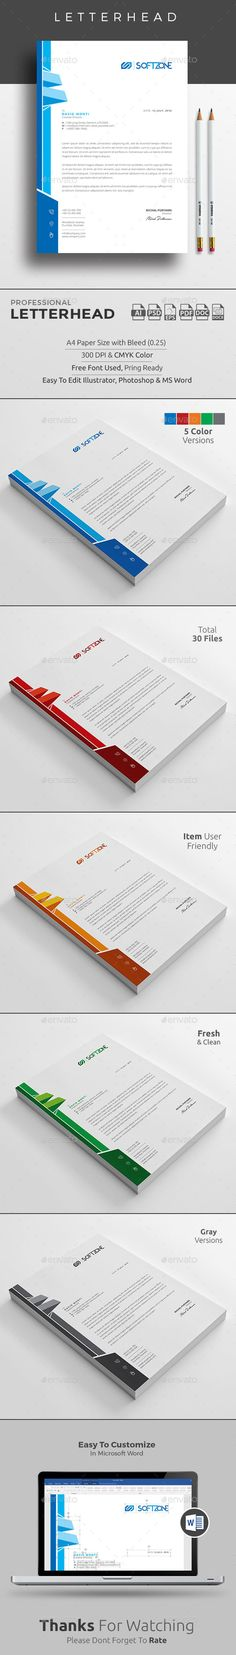 Letterhead stationery printing print templates and template spiritdancerdesigns Gallery